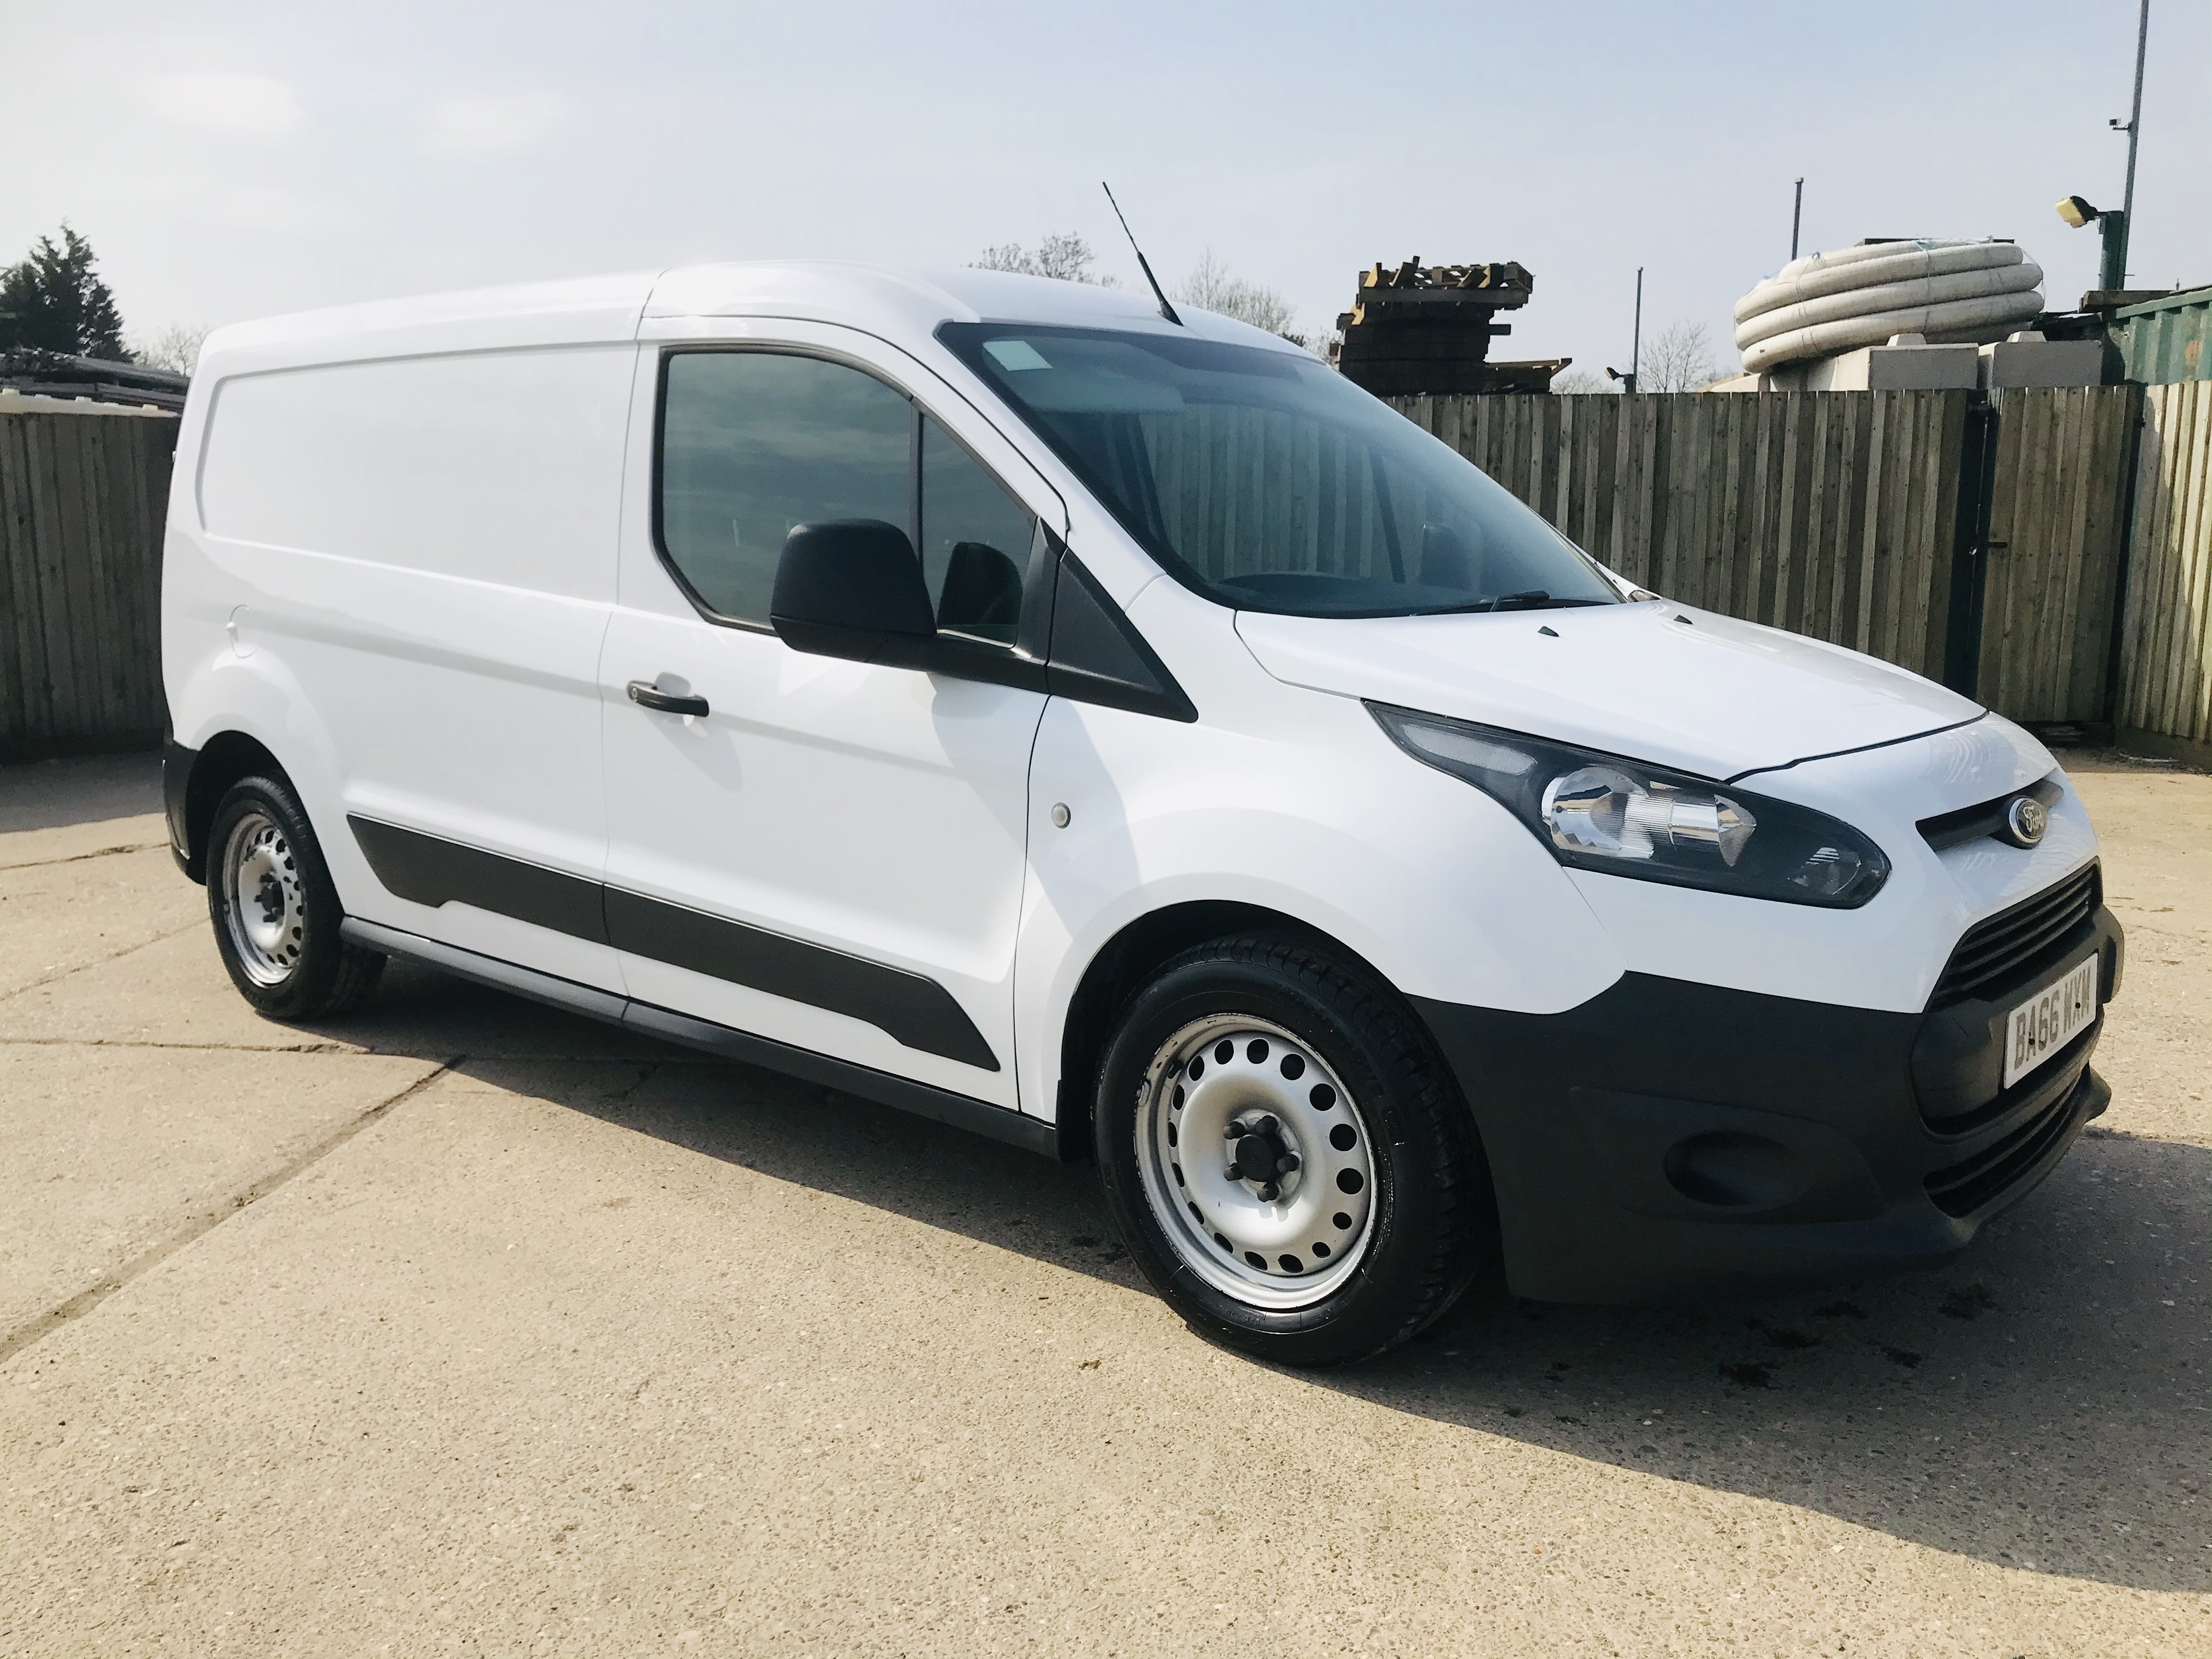 """ON SALE FORD TRANSIT CONNECT 1.6TDCI ECO-TECH 'LWB' 2017 REG - 1 OWNER - FSH - EURO 6""""ULEZ COMPLIANT - Image 2 of 30"""